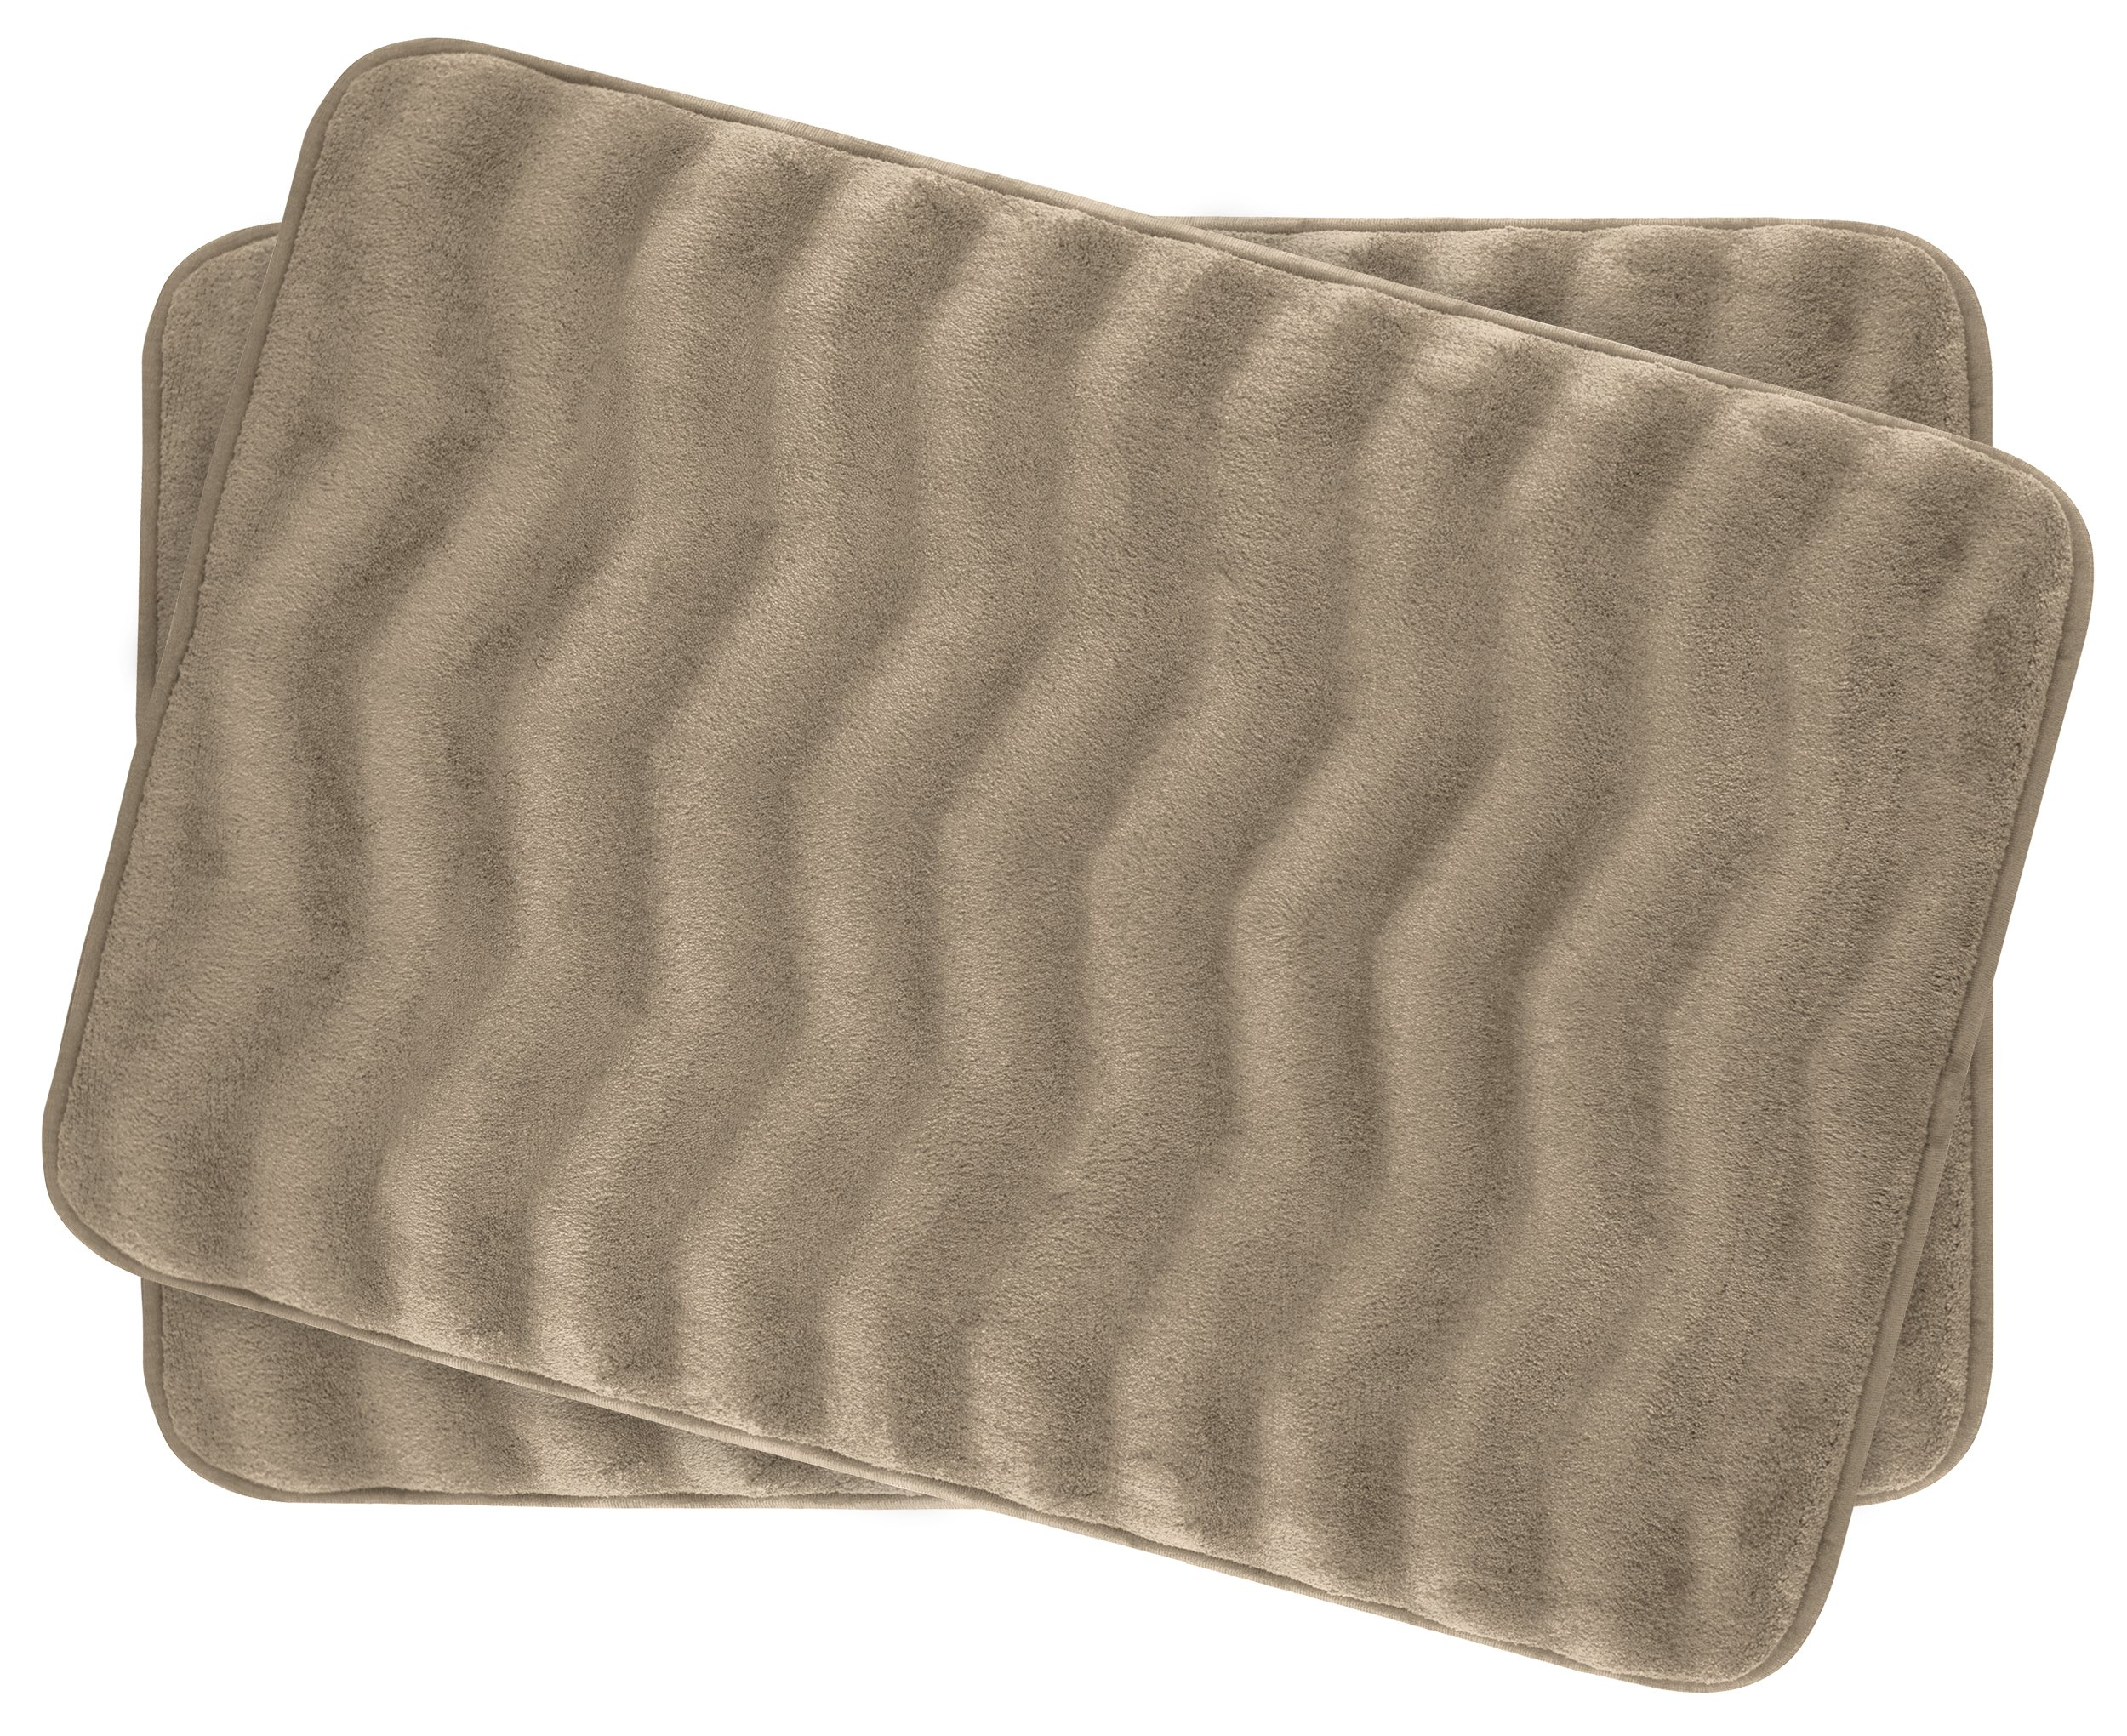 Bounce Comfort Waves Extra Thick Memory Foam Bath Mat Set - Plush 2 Piece Set with BounceComfort Technology, 17 x 24 in. Linen